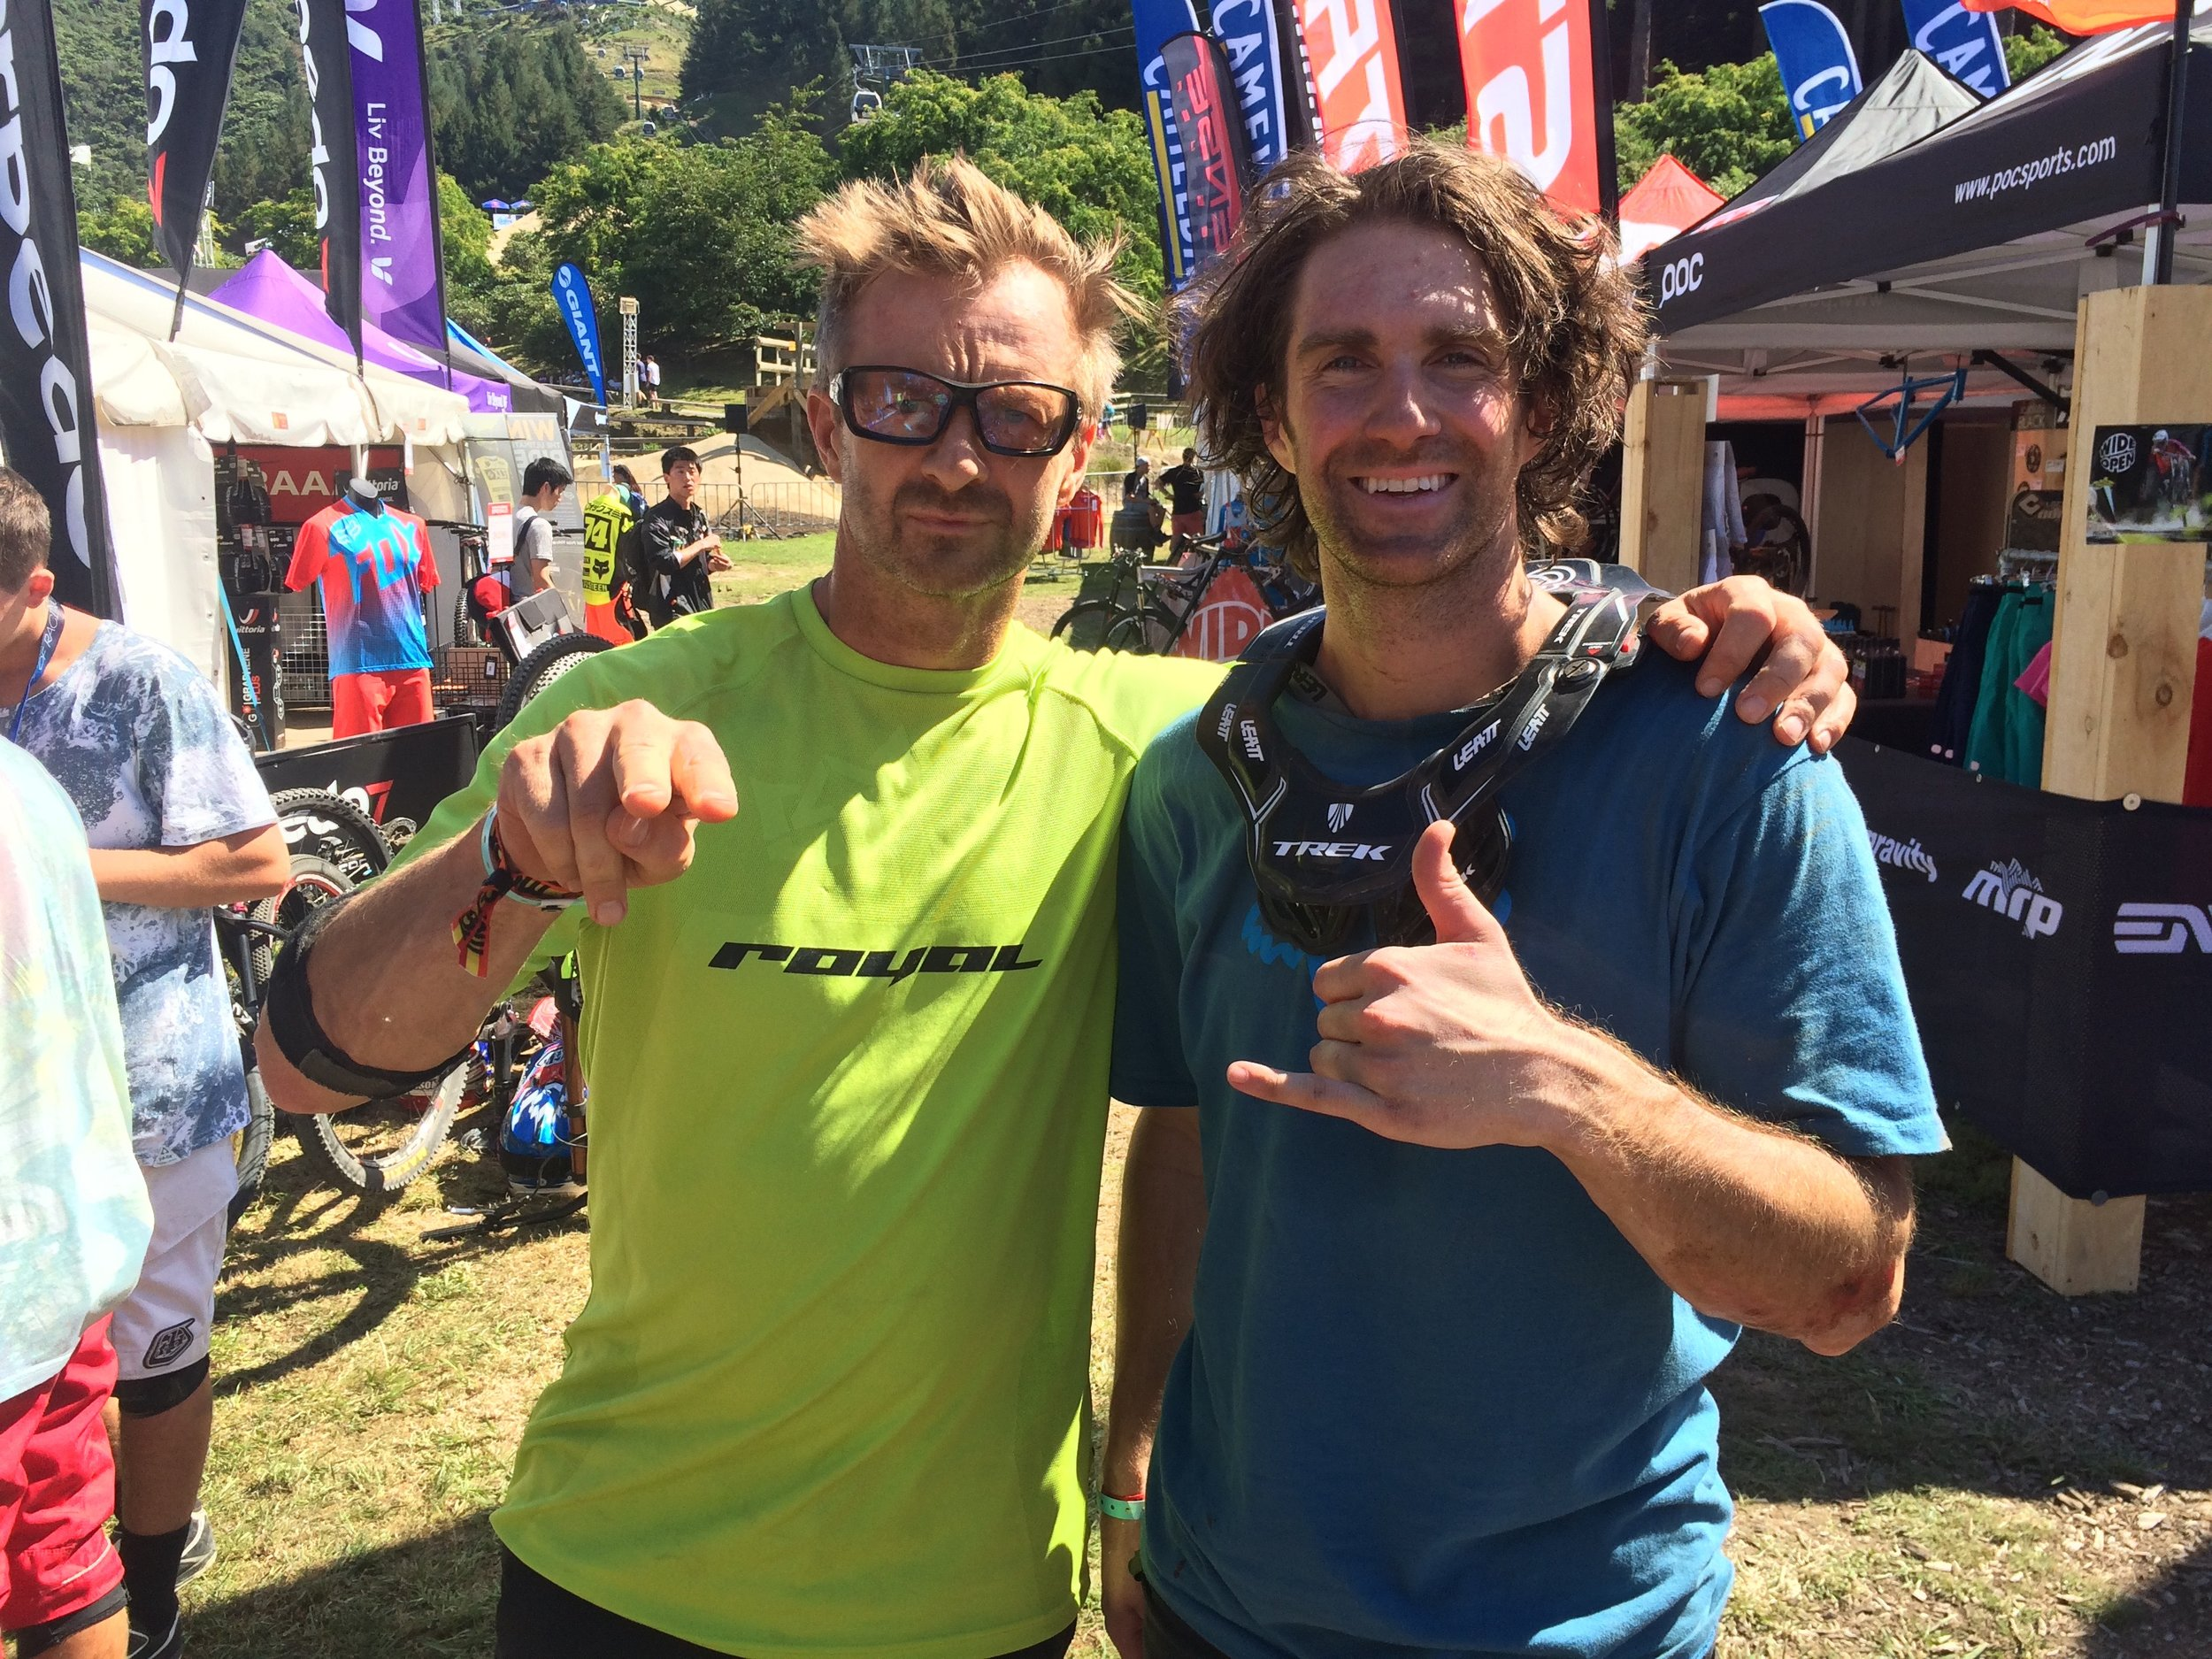 Talk about hanging with the pros...Cam McCaul got to meet his hero therodfather at Crankworx. If you've got hair...use it.